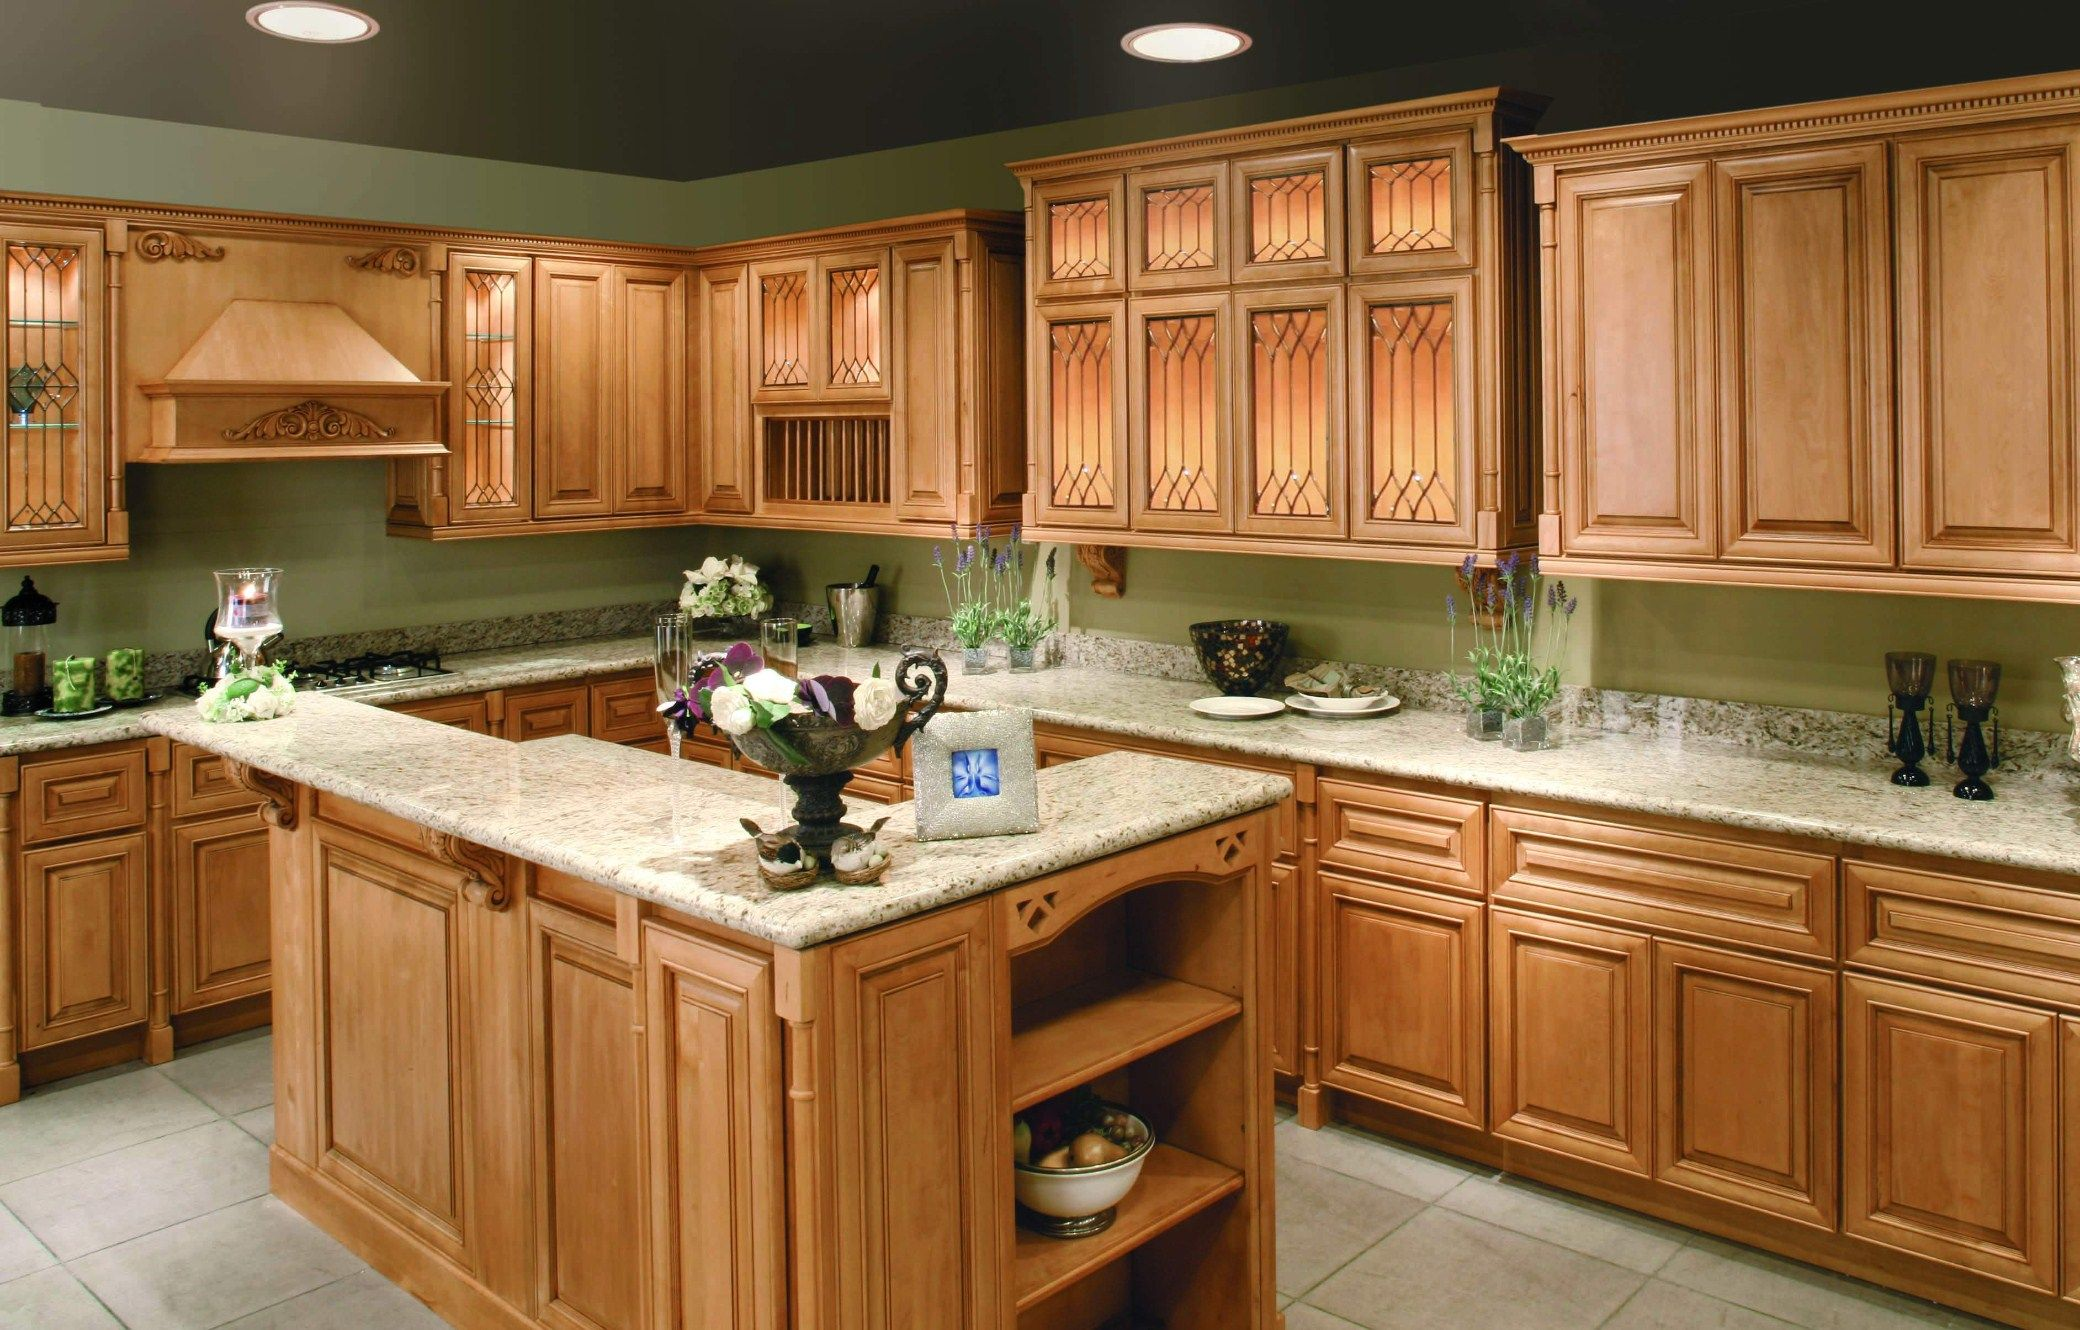 kitchen cabinets and countertops Kitchen Quartz Countertops With Oak Cabinets Cabinets With White Quartz